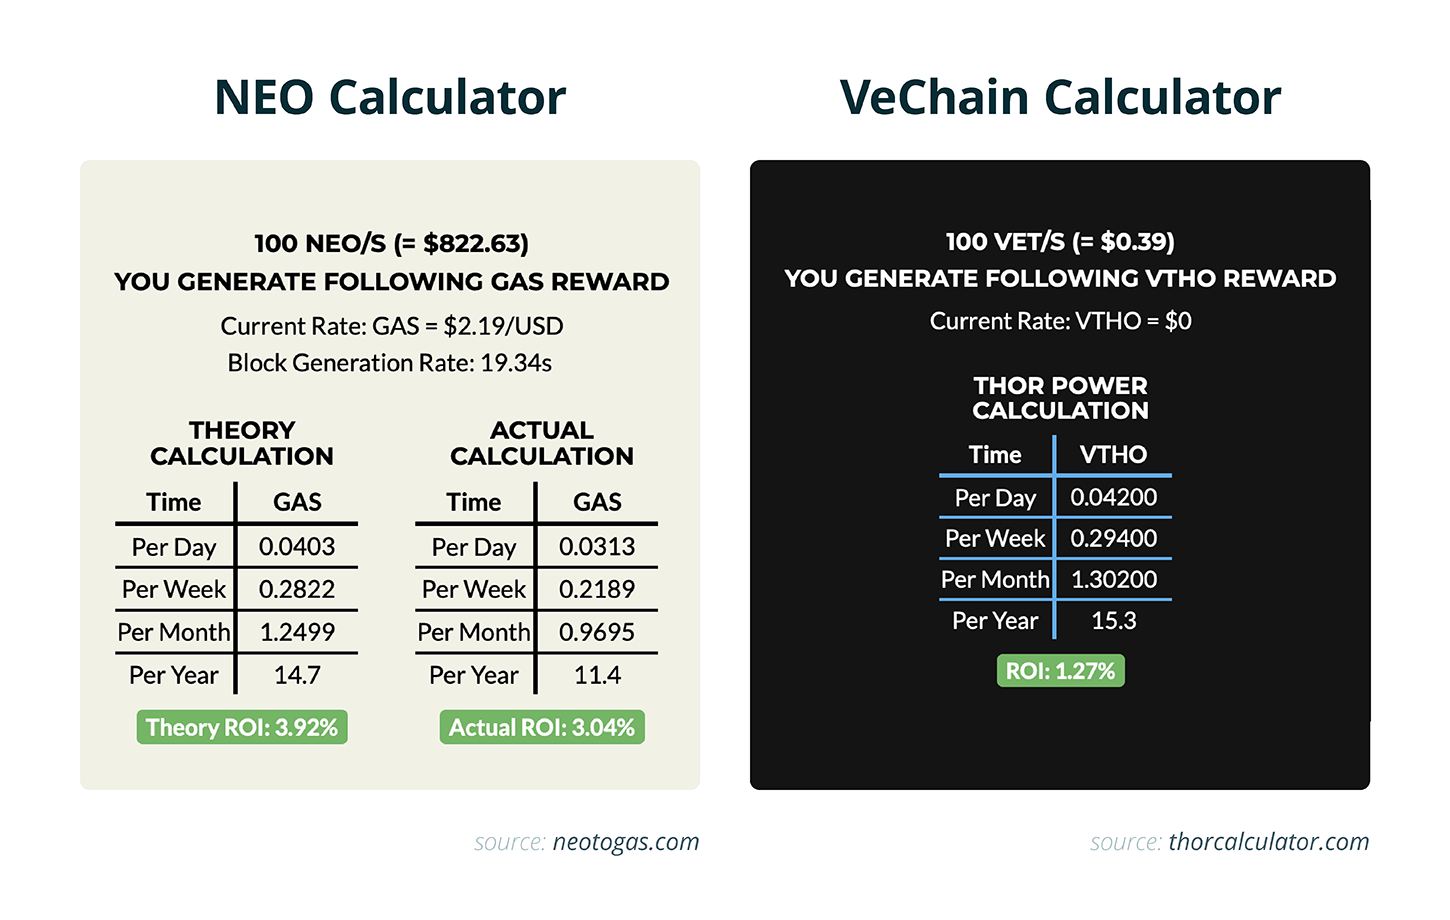 NEO Calculator / VeChain Calculator